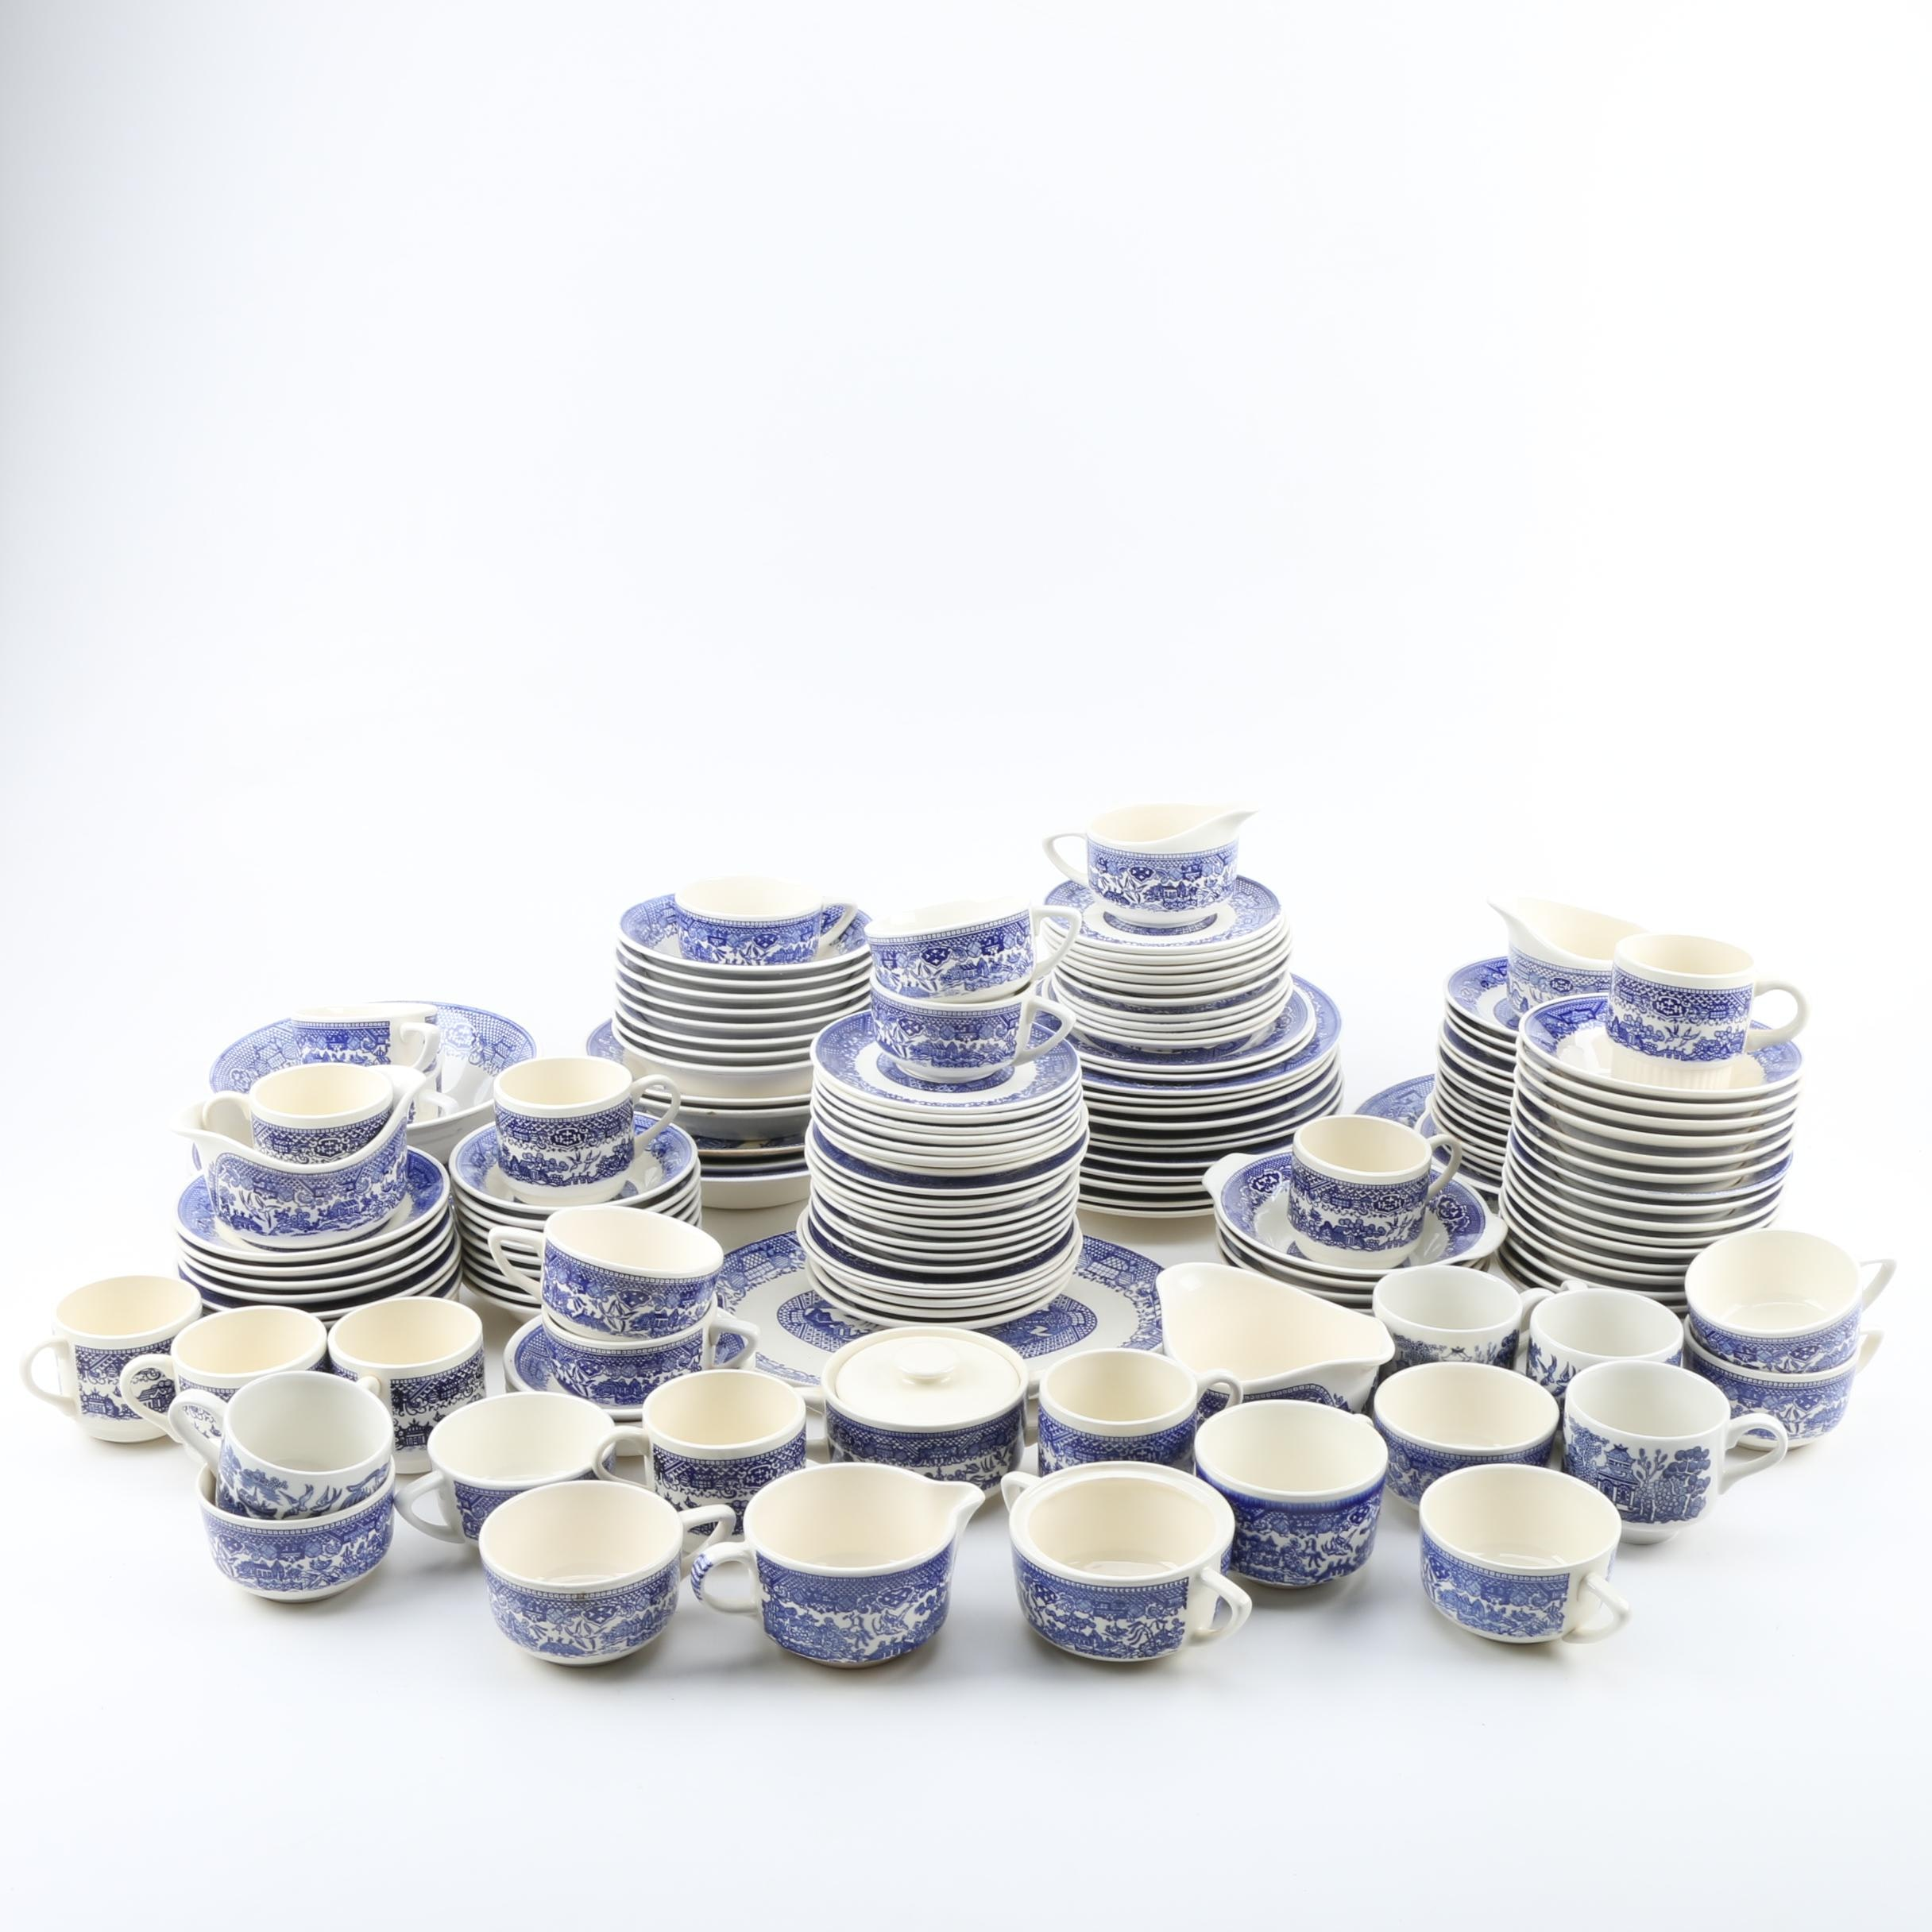 """Blue Willow"" Ceramic Tableware Featuring Royal China"